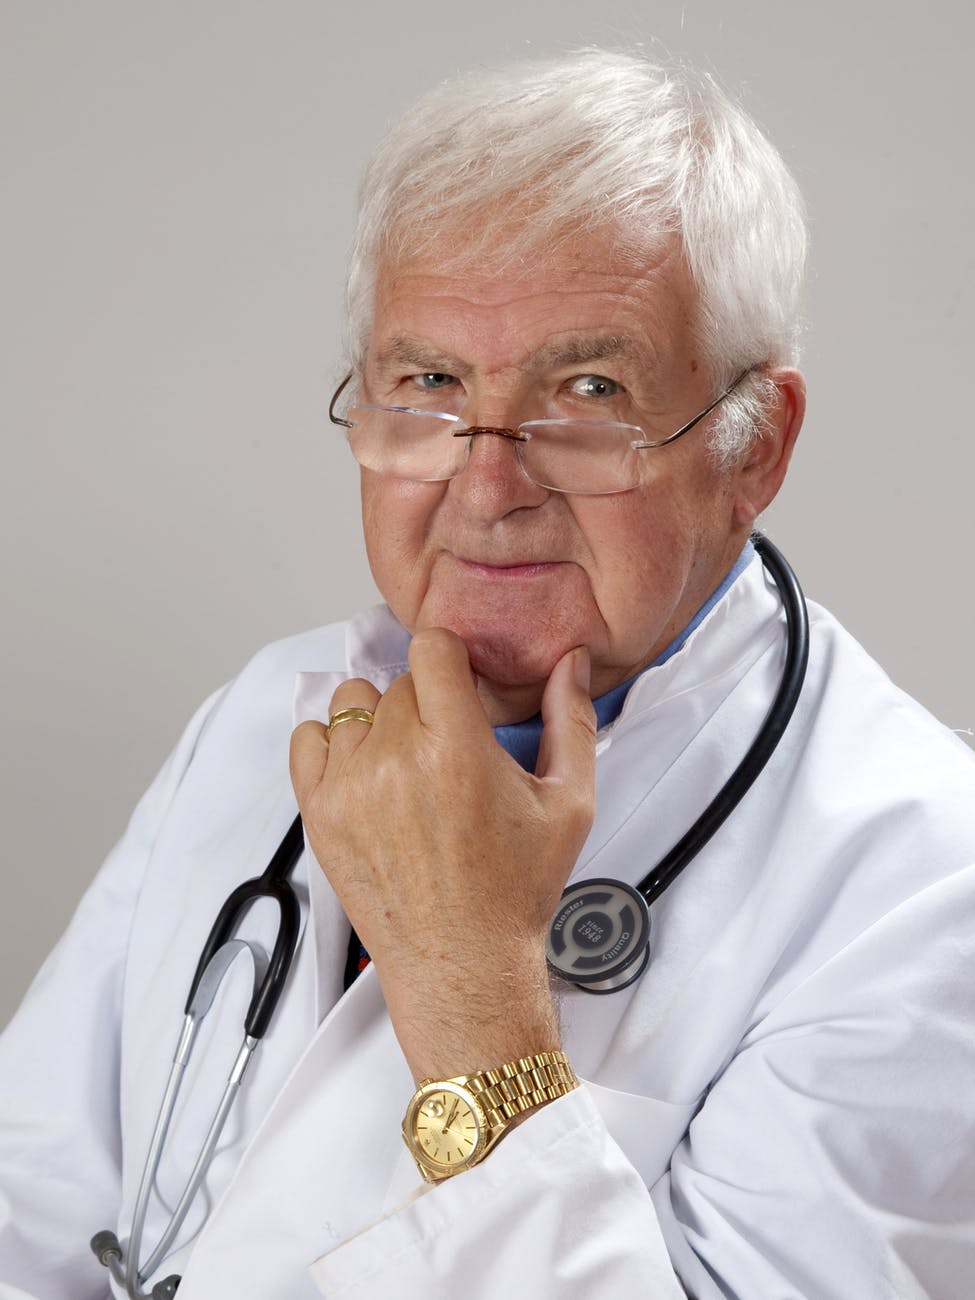 adult care cure doctor